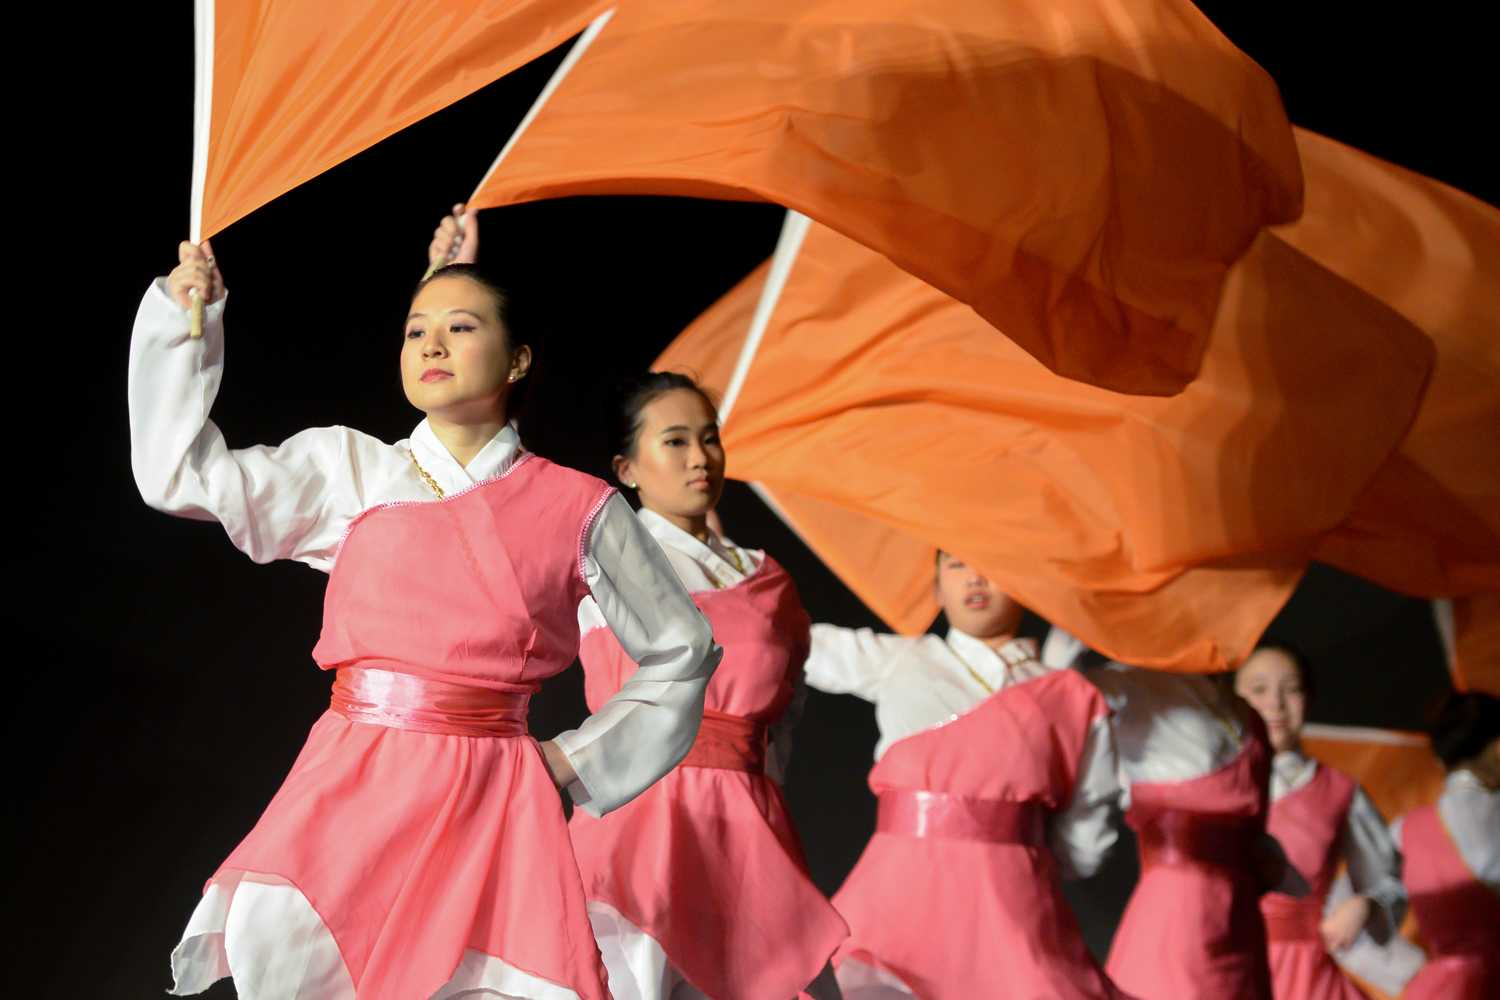 Members of the Organization of Chinese Americans perform a flag dance during Sunday's Lunar New Year event. (Photo by Thomas J. Yang | Visual Editor)